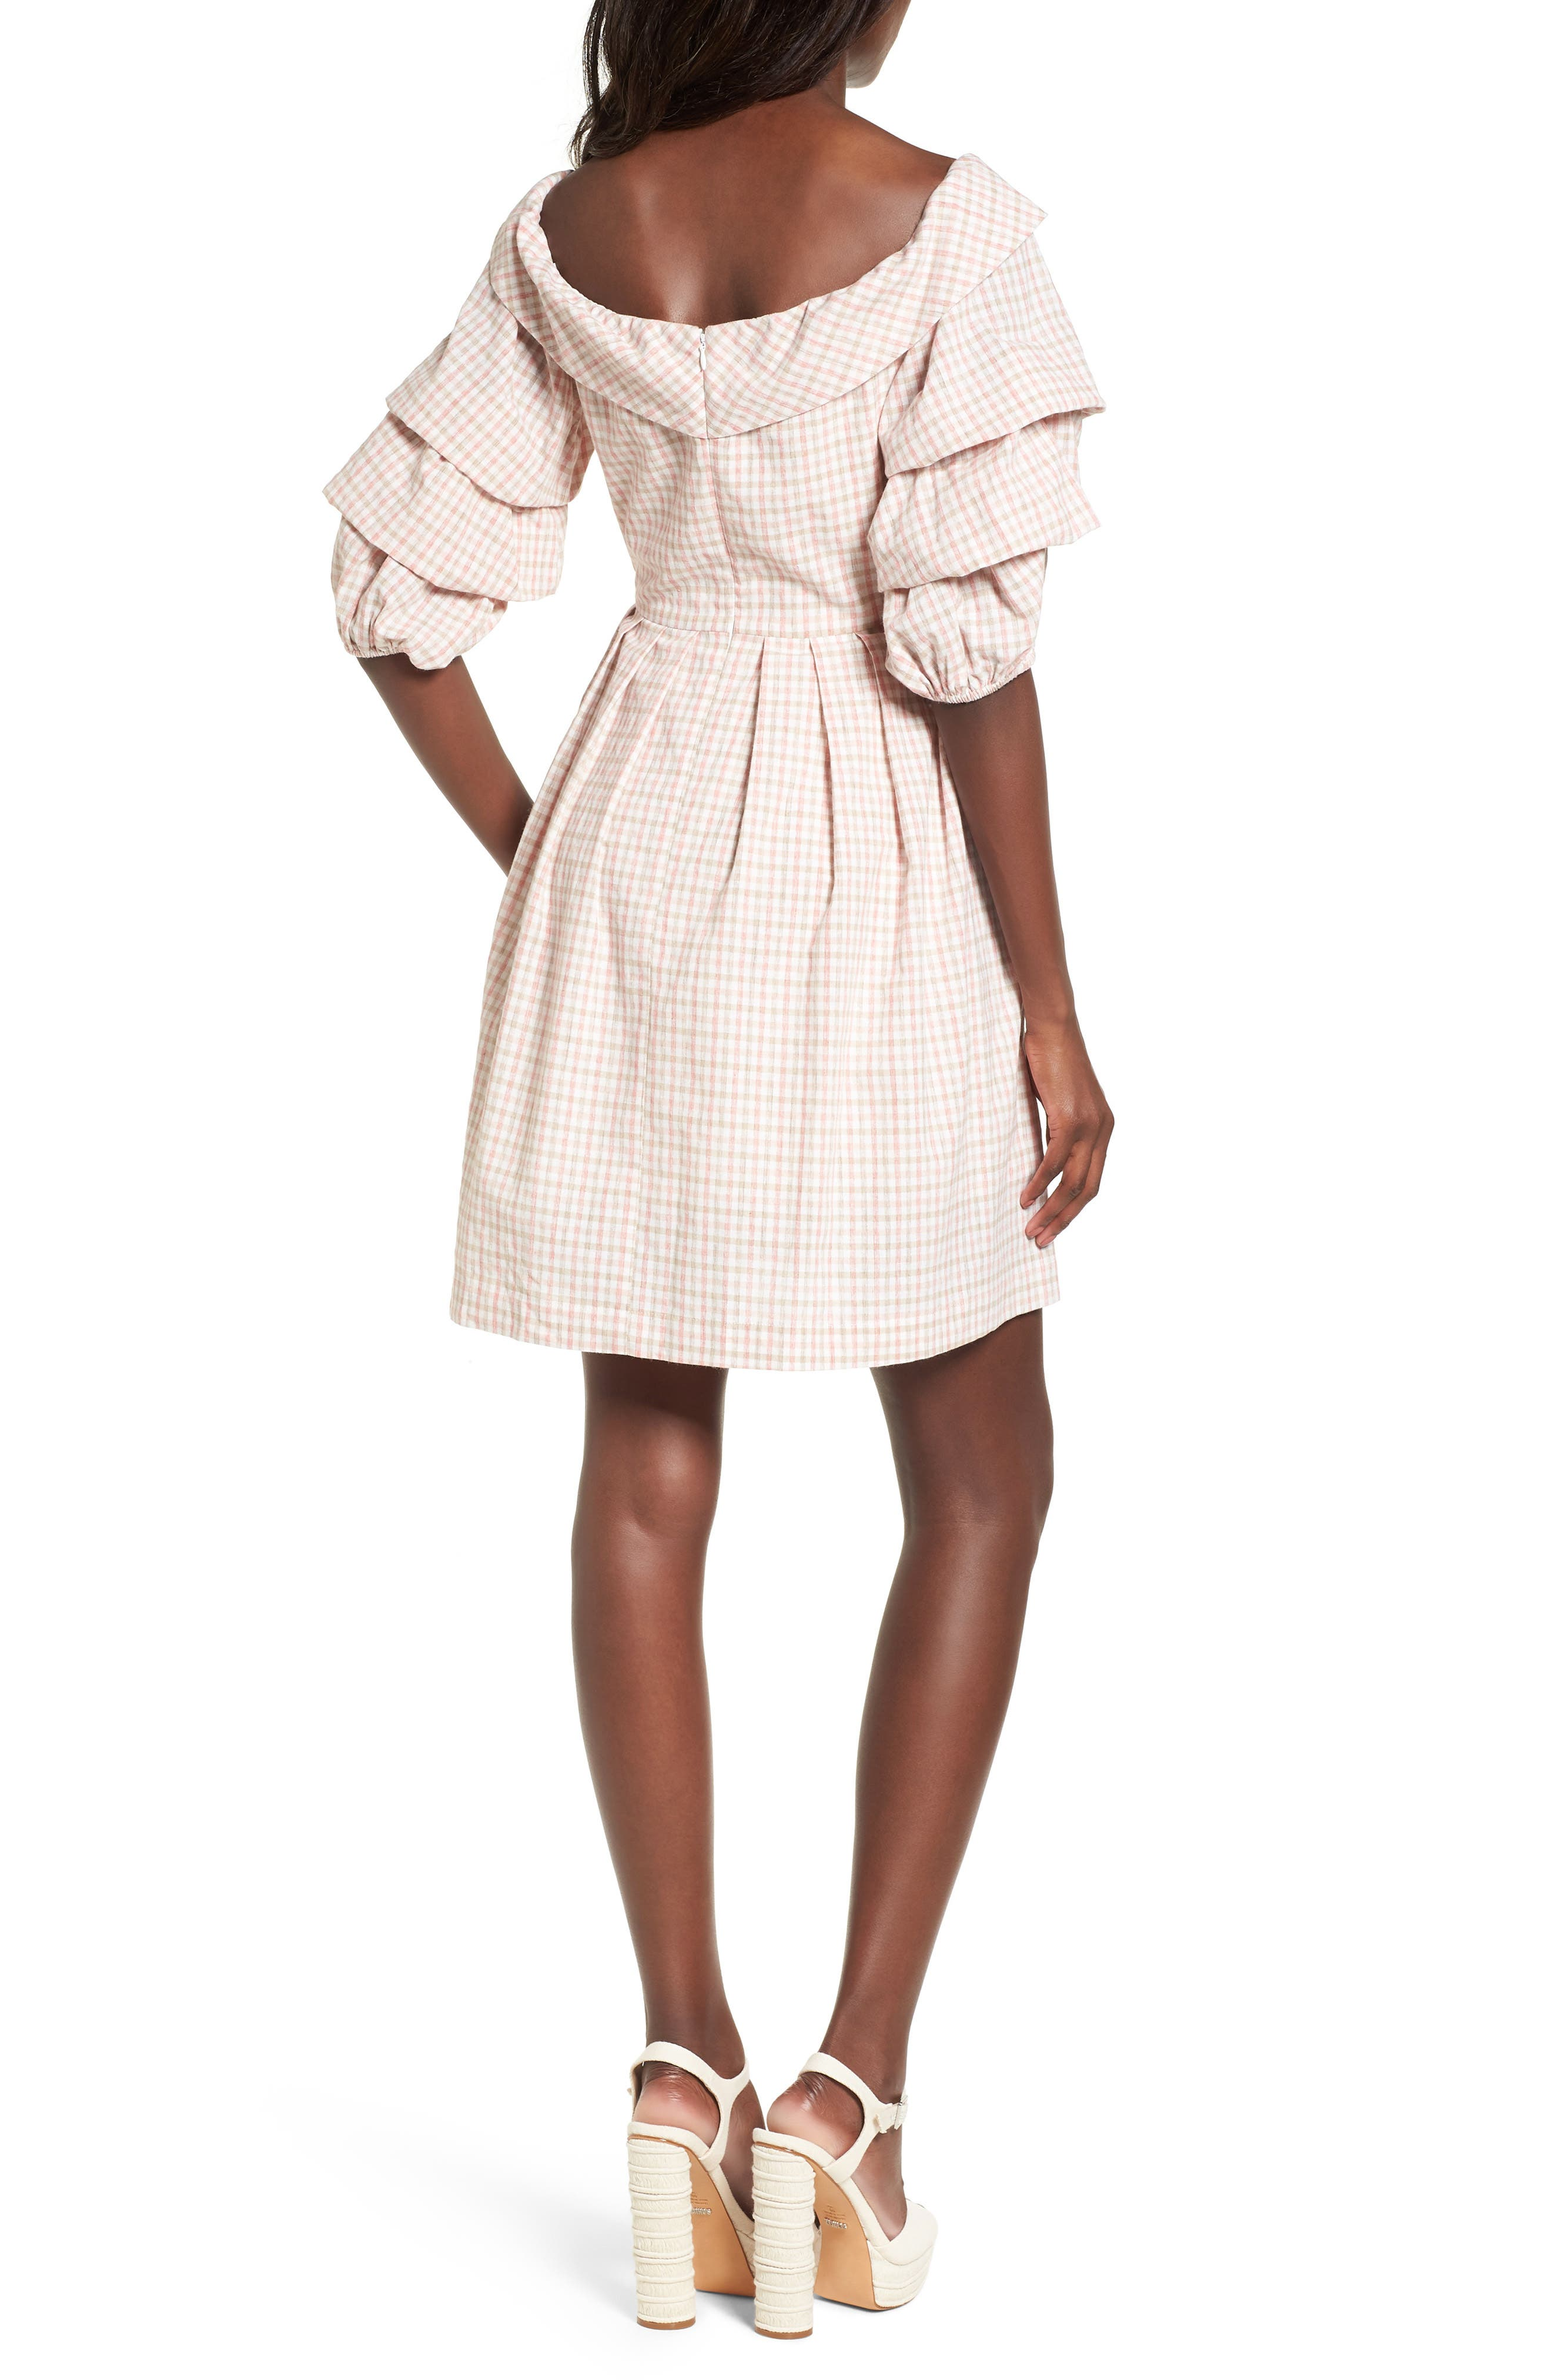 Chriselle x J.O.A. Tiered Sleeve Minidress,                             Alternate thumbnail 4, color,                             Patina Gingham